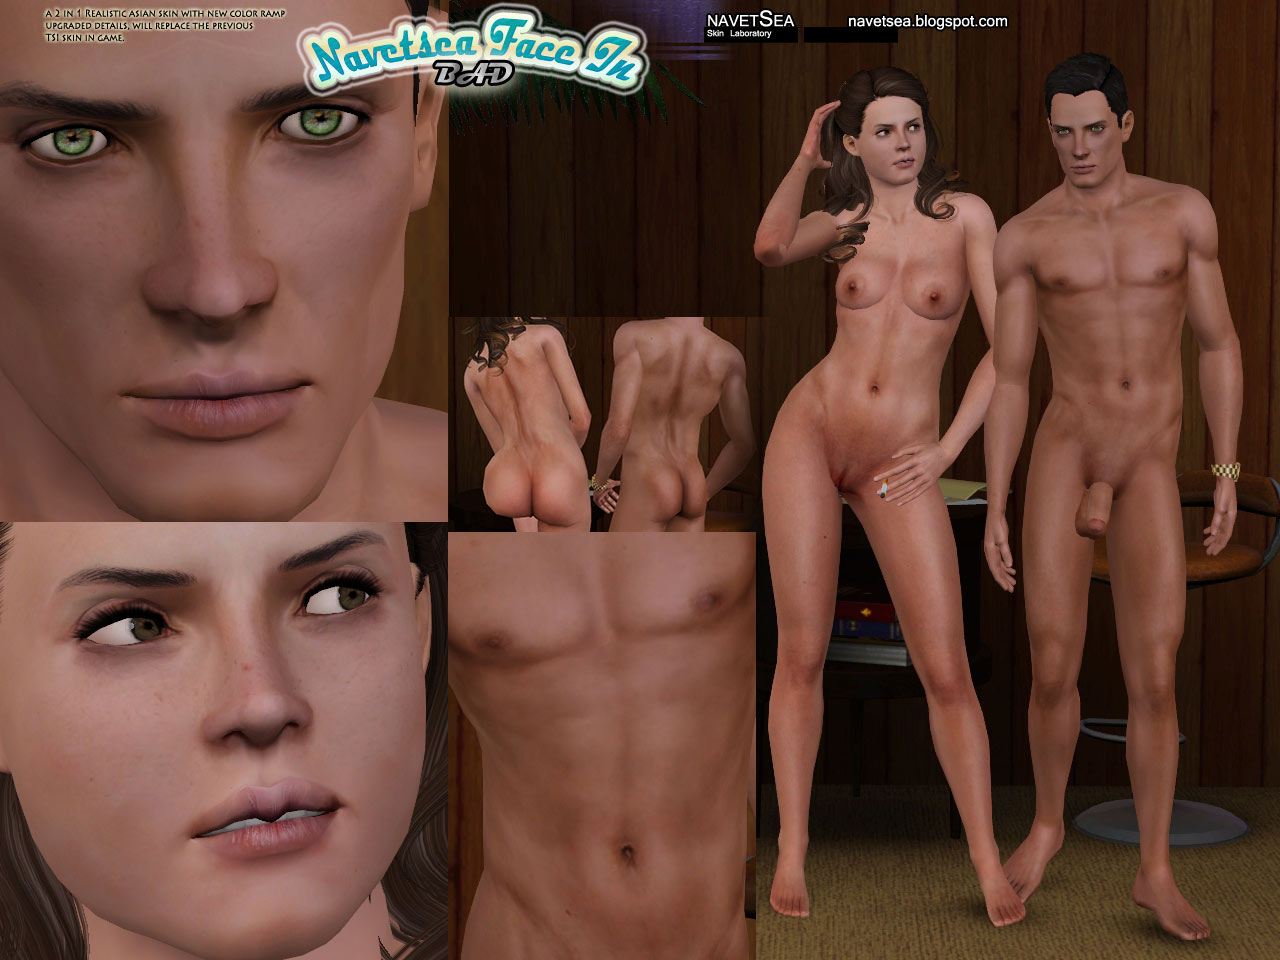 The sims2 sex patch naked photo